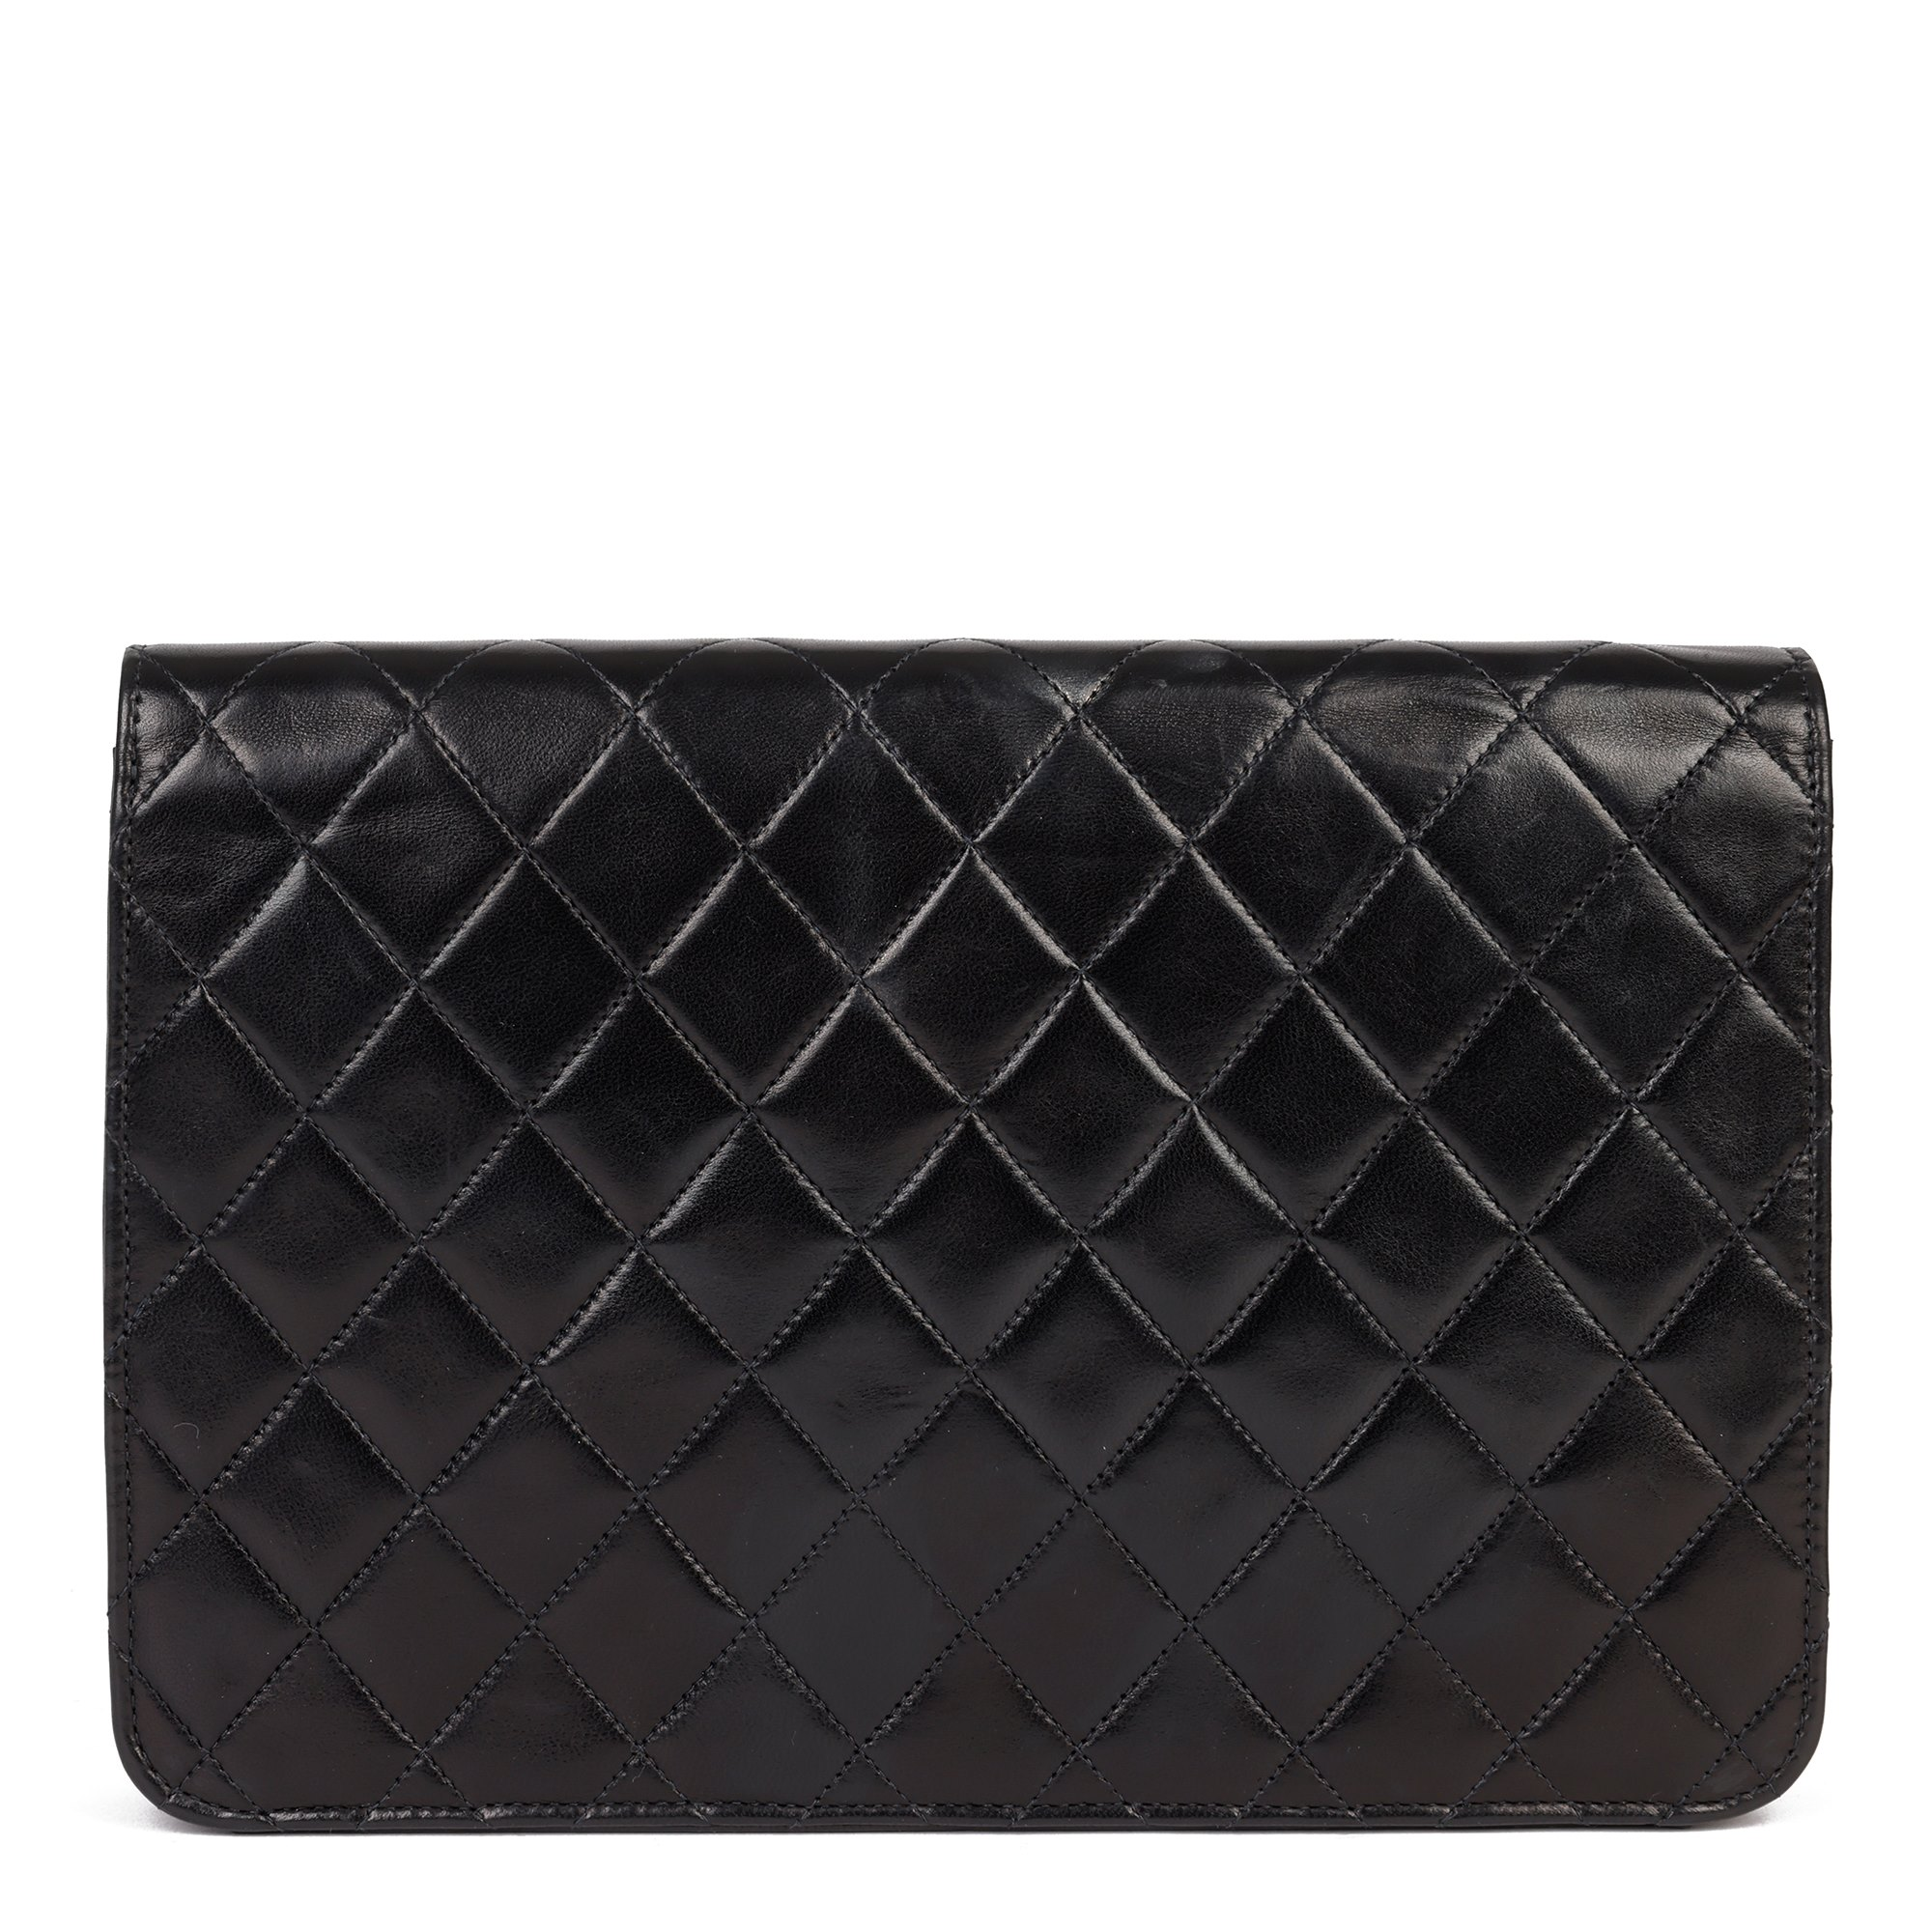 Chanel Black Quilted Lambskin Leather Vintage Medium Classic Single Flap Bag